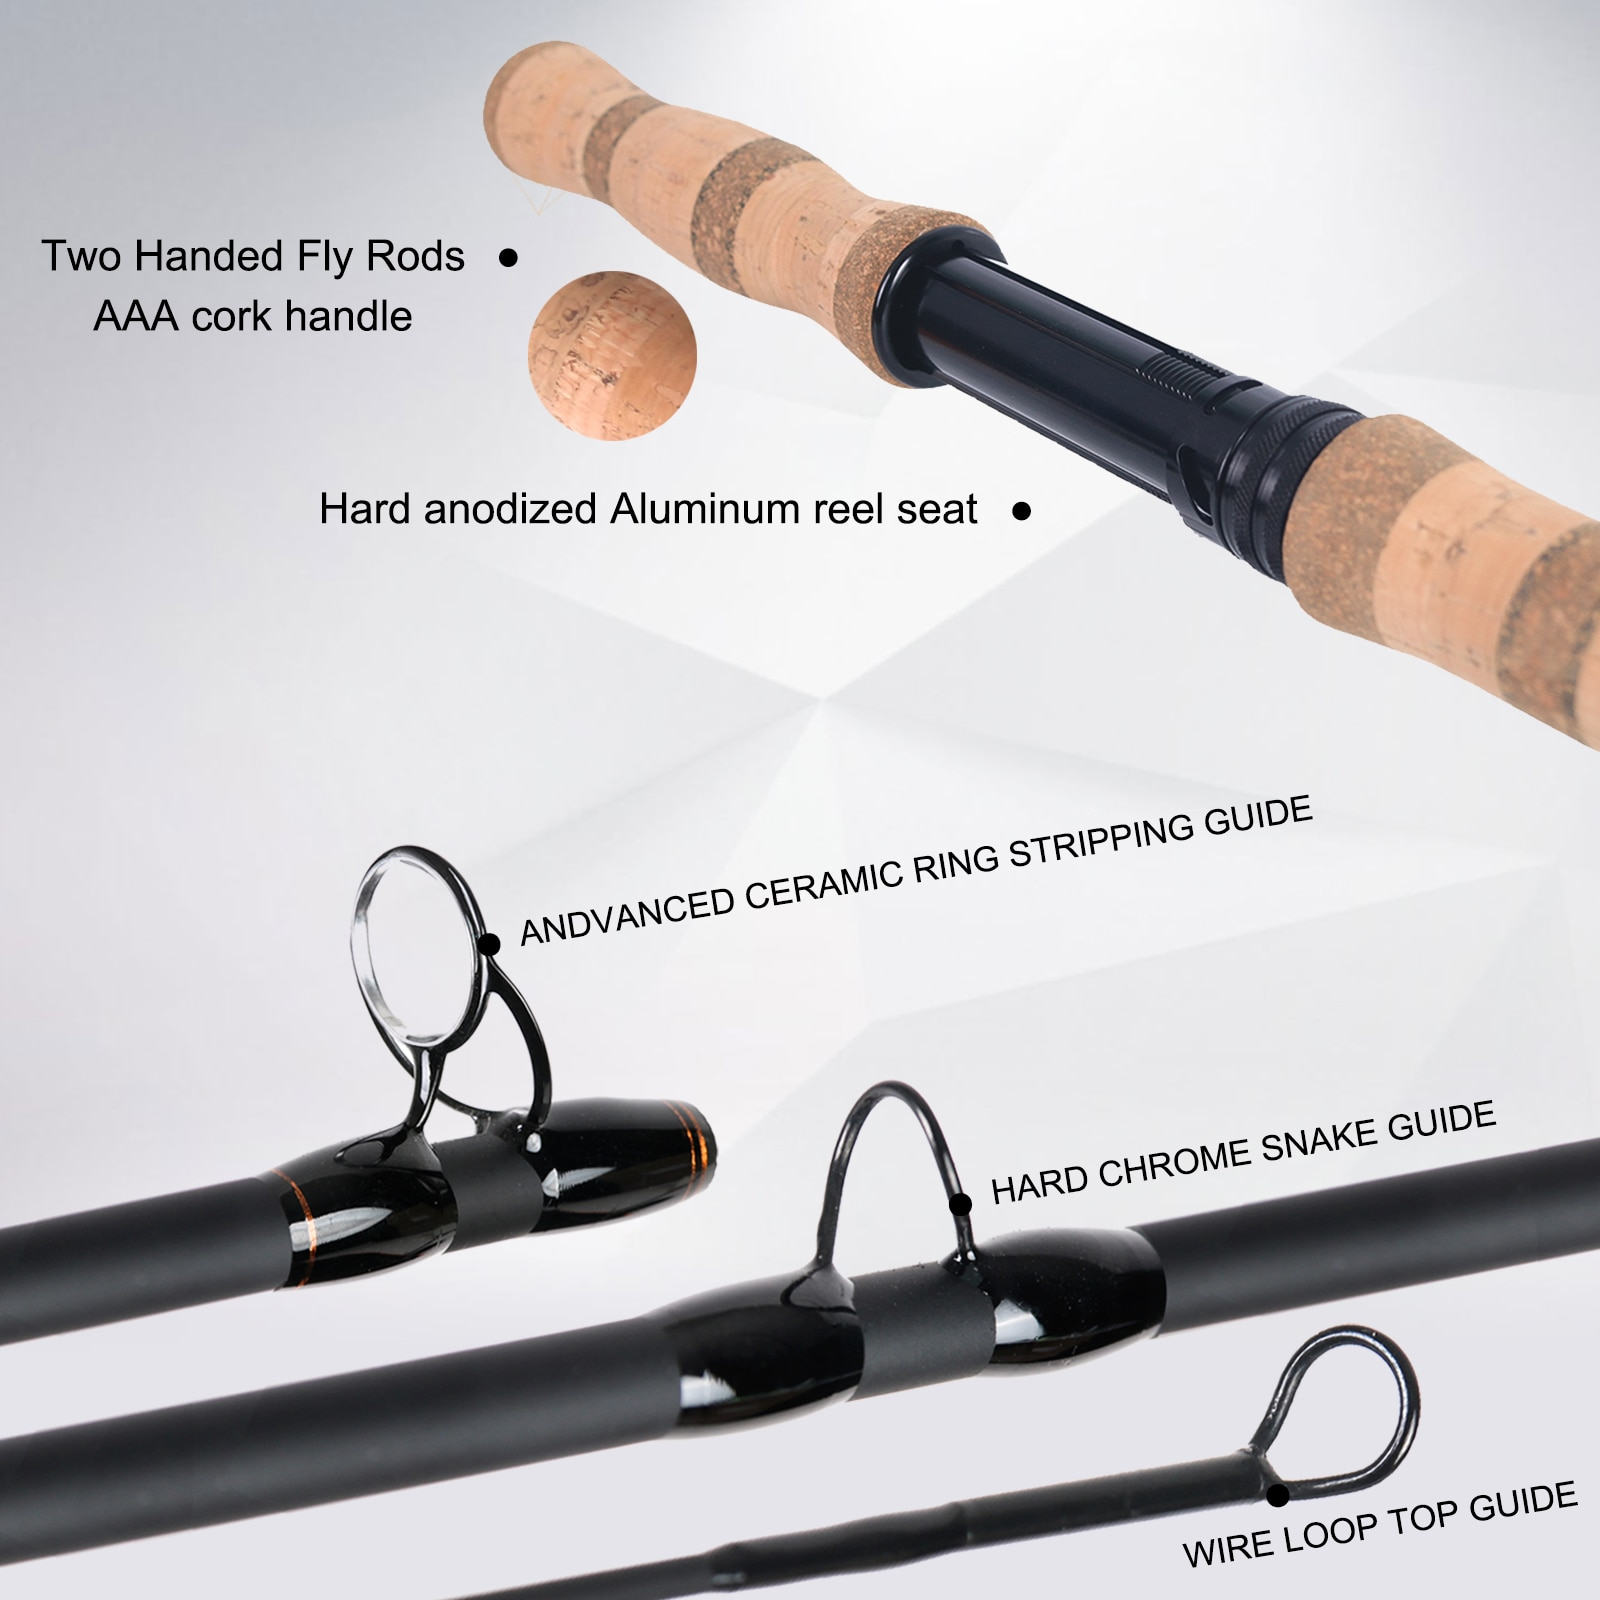 Maximumcatch Switch Spey Fly Fishing Rod IM10 30T+40T Carbon Fiber Fast Action Fly Rod With Spare Butt 11-15FT 3-10WT enlarge